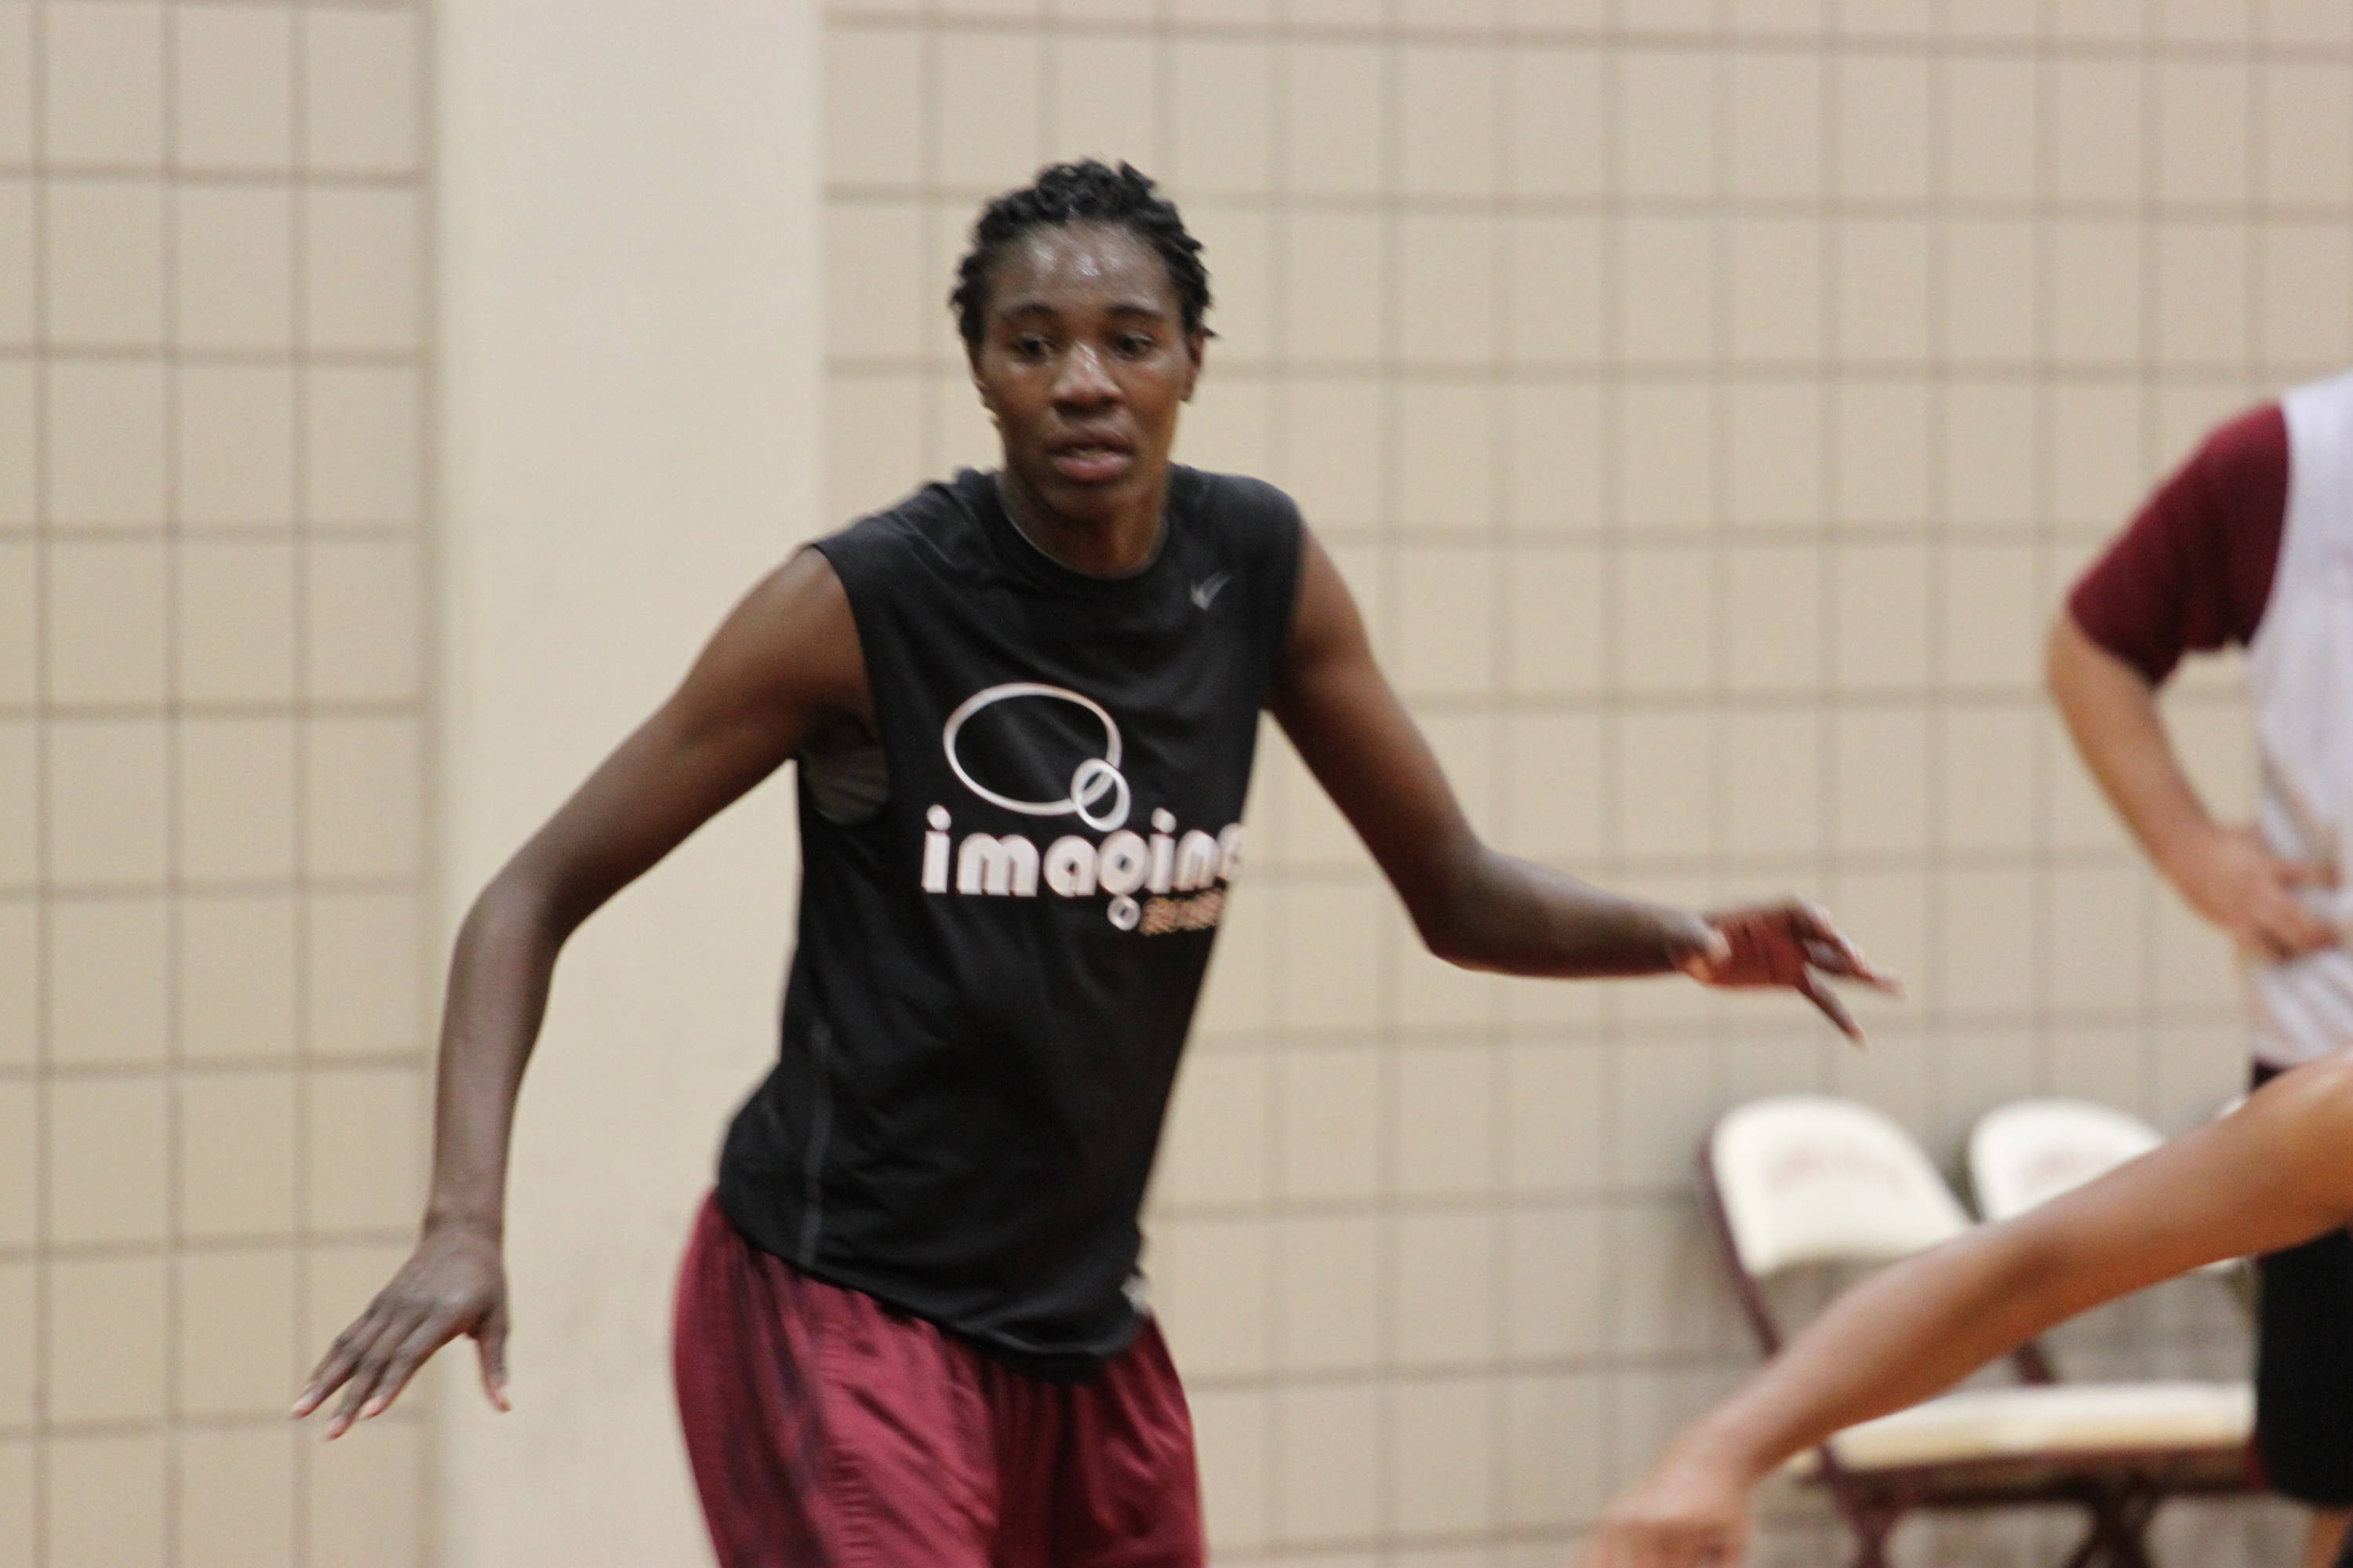 Freshman Natasha Howard was one of the nation's top recruits coming out of high school in 2010.